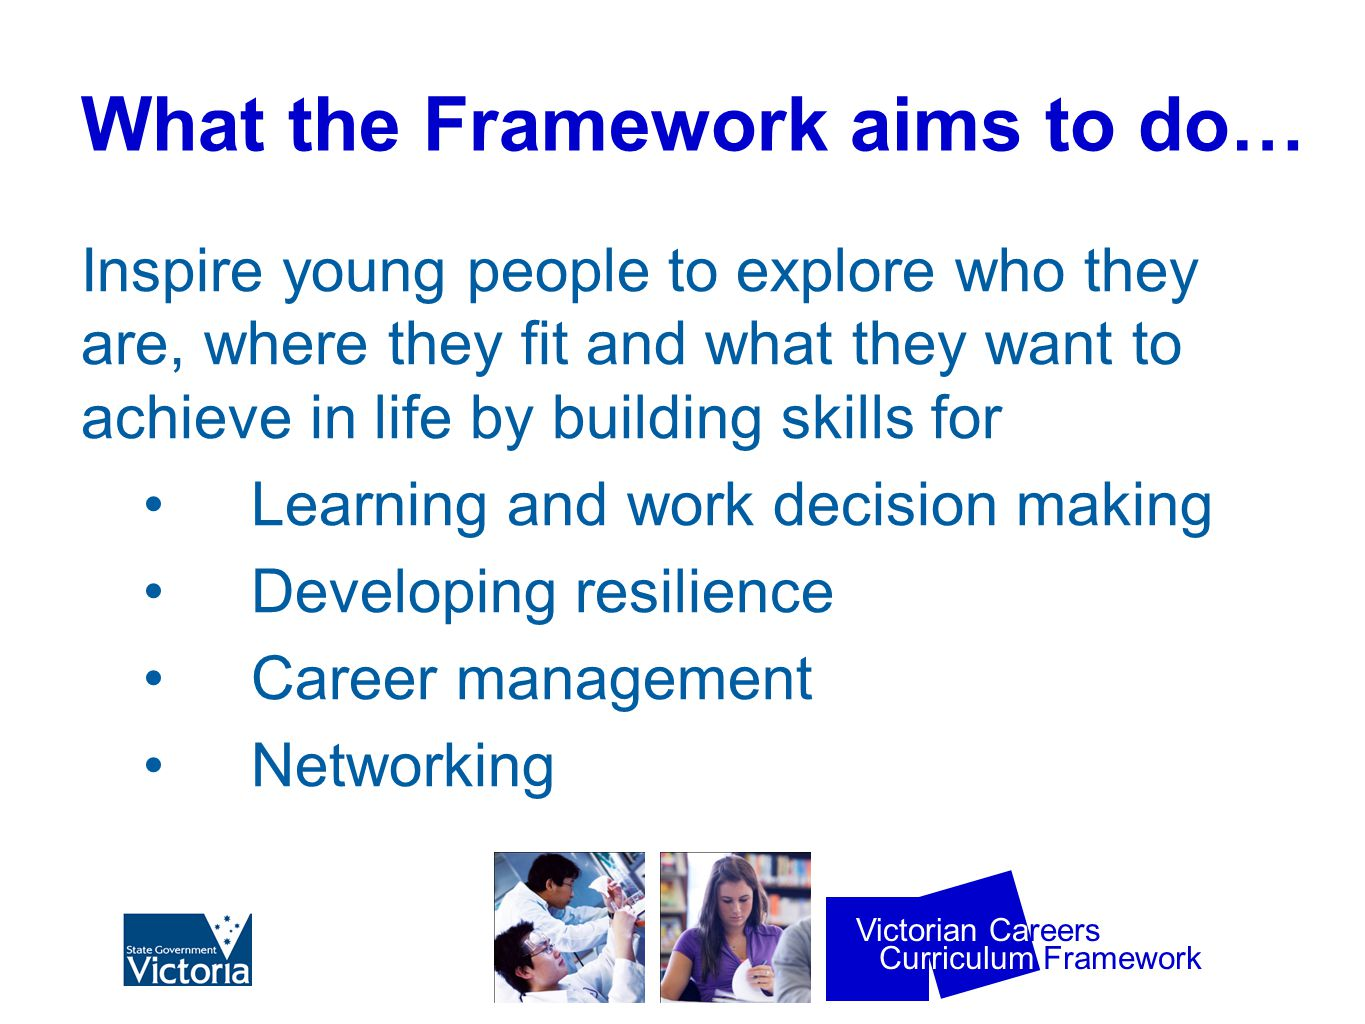 Curriculum Framework Victorian Careers What the Framework aims to do… Inspire young people to explore who they are, where they fit and what they want to achieve in life by building skills for Learning and work decision making Developing resilience Career management Networking